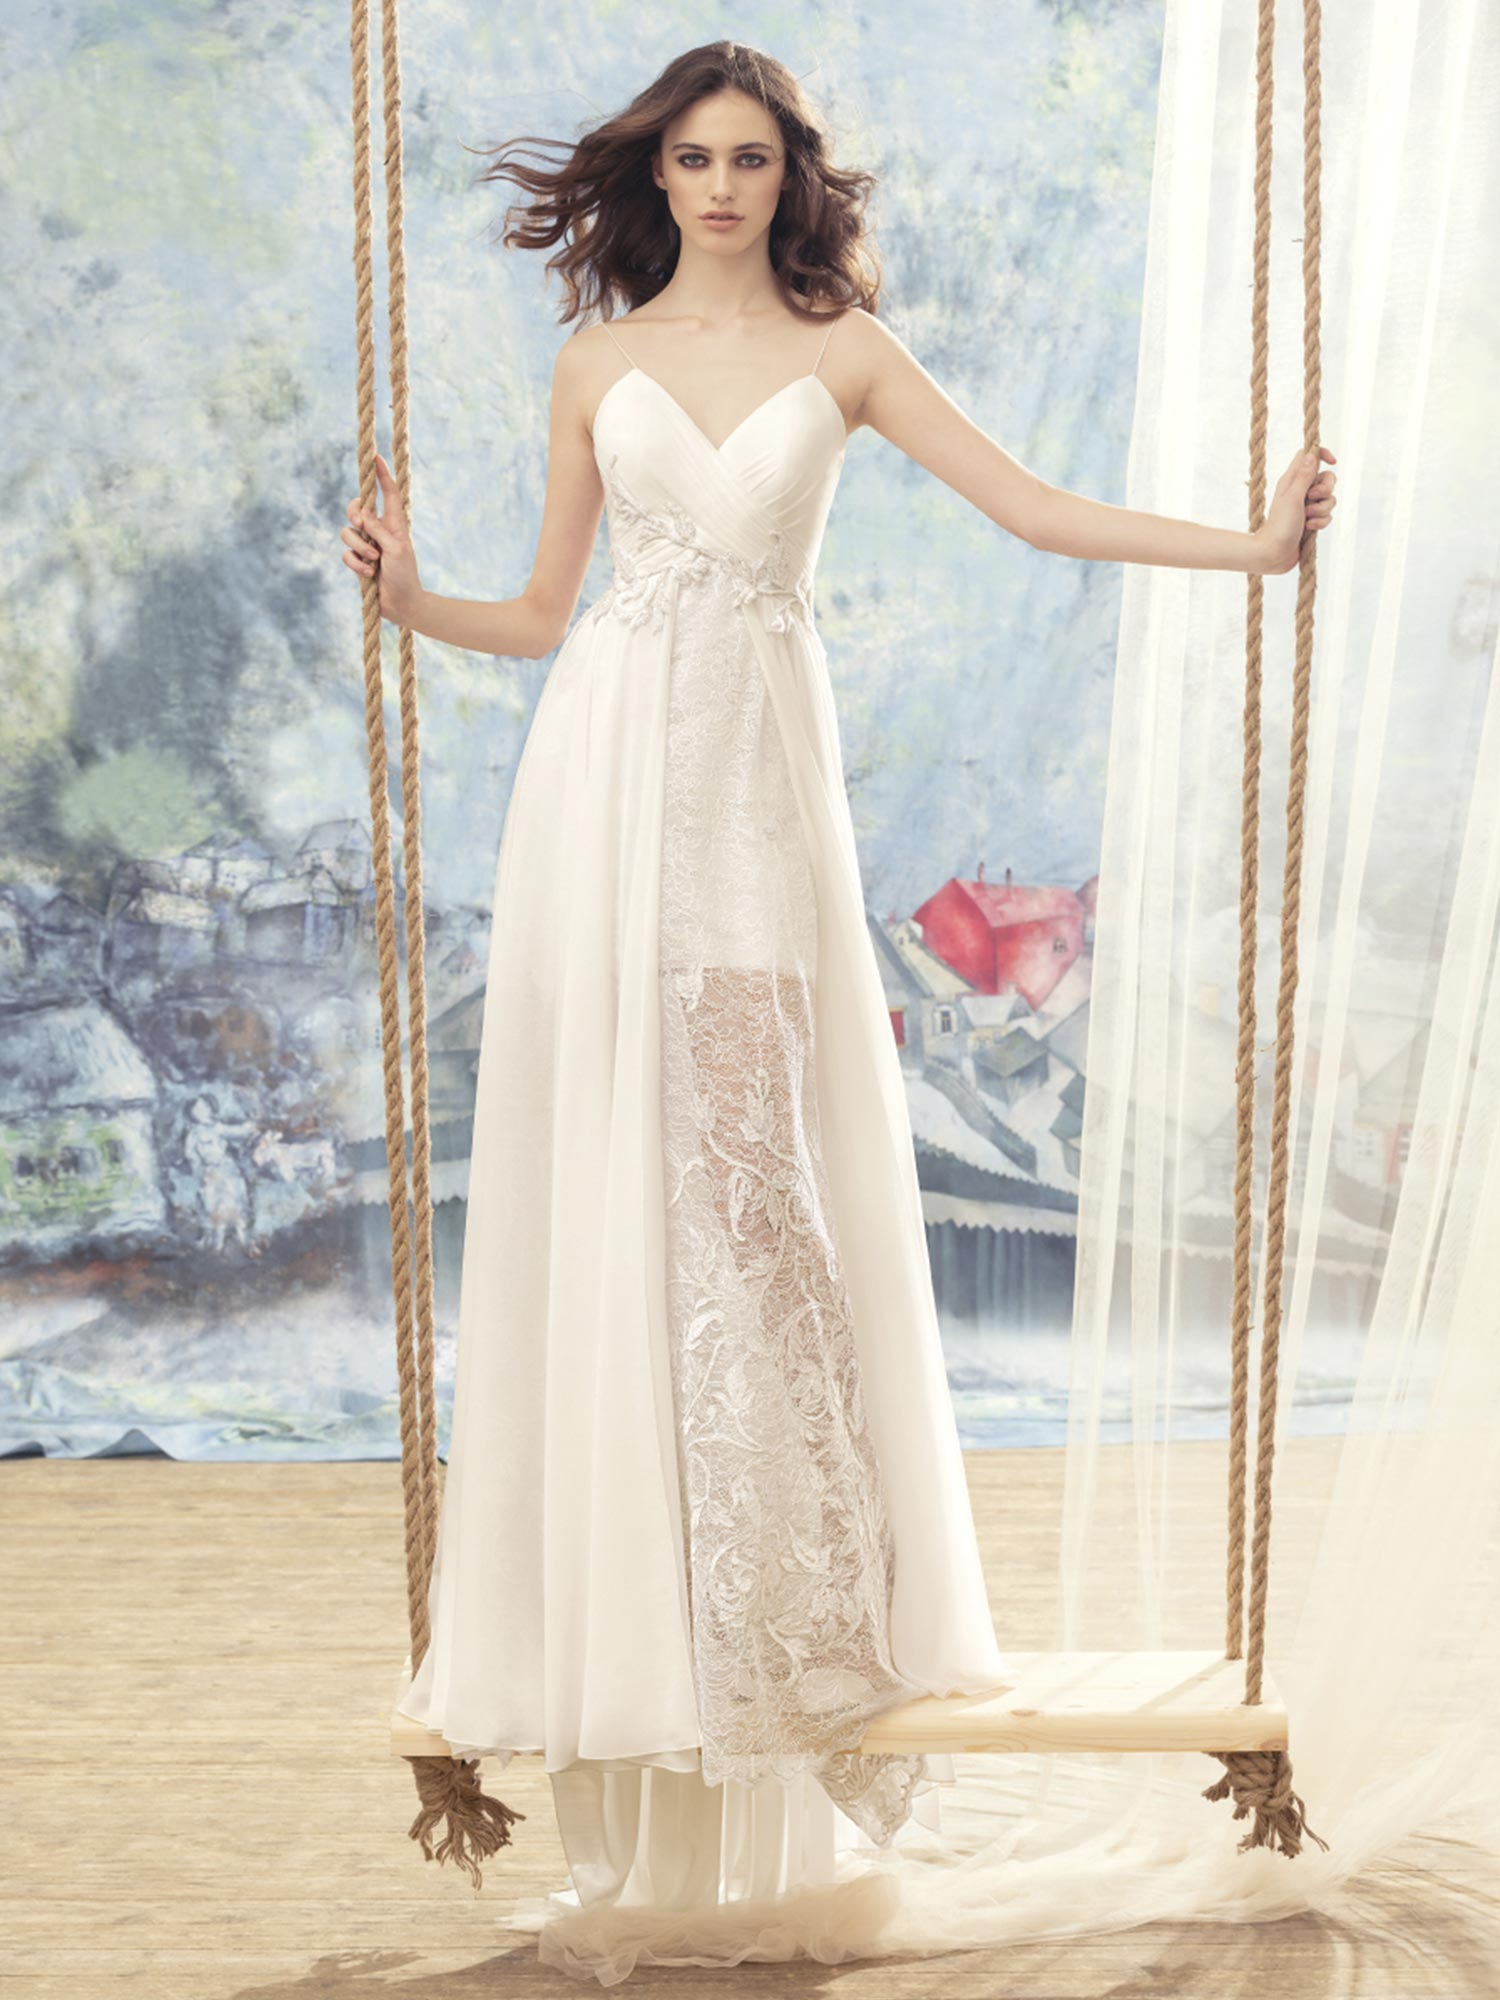 Spaghetti Strap Wedding Dress With Sheer Lace Skirt